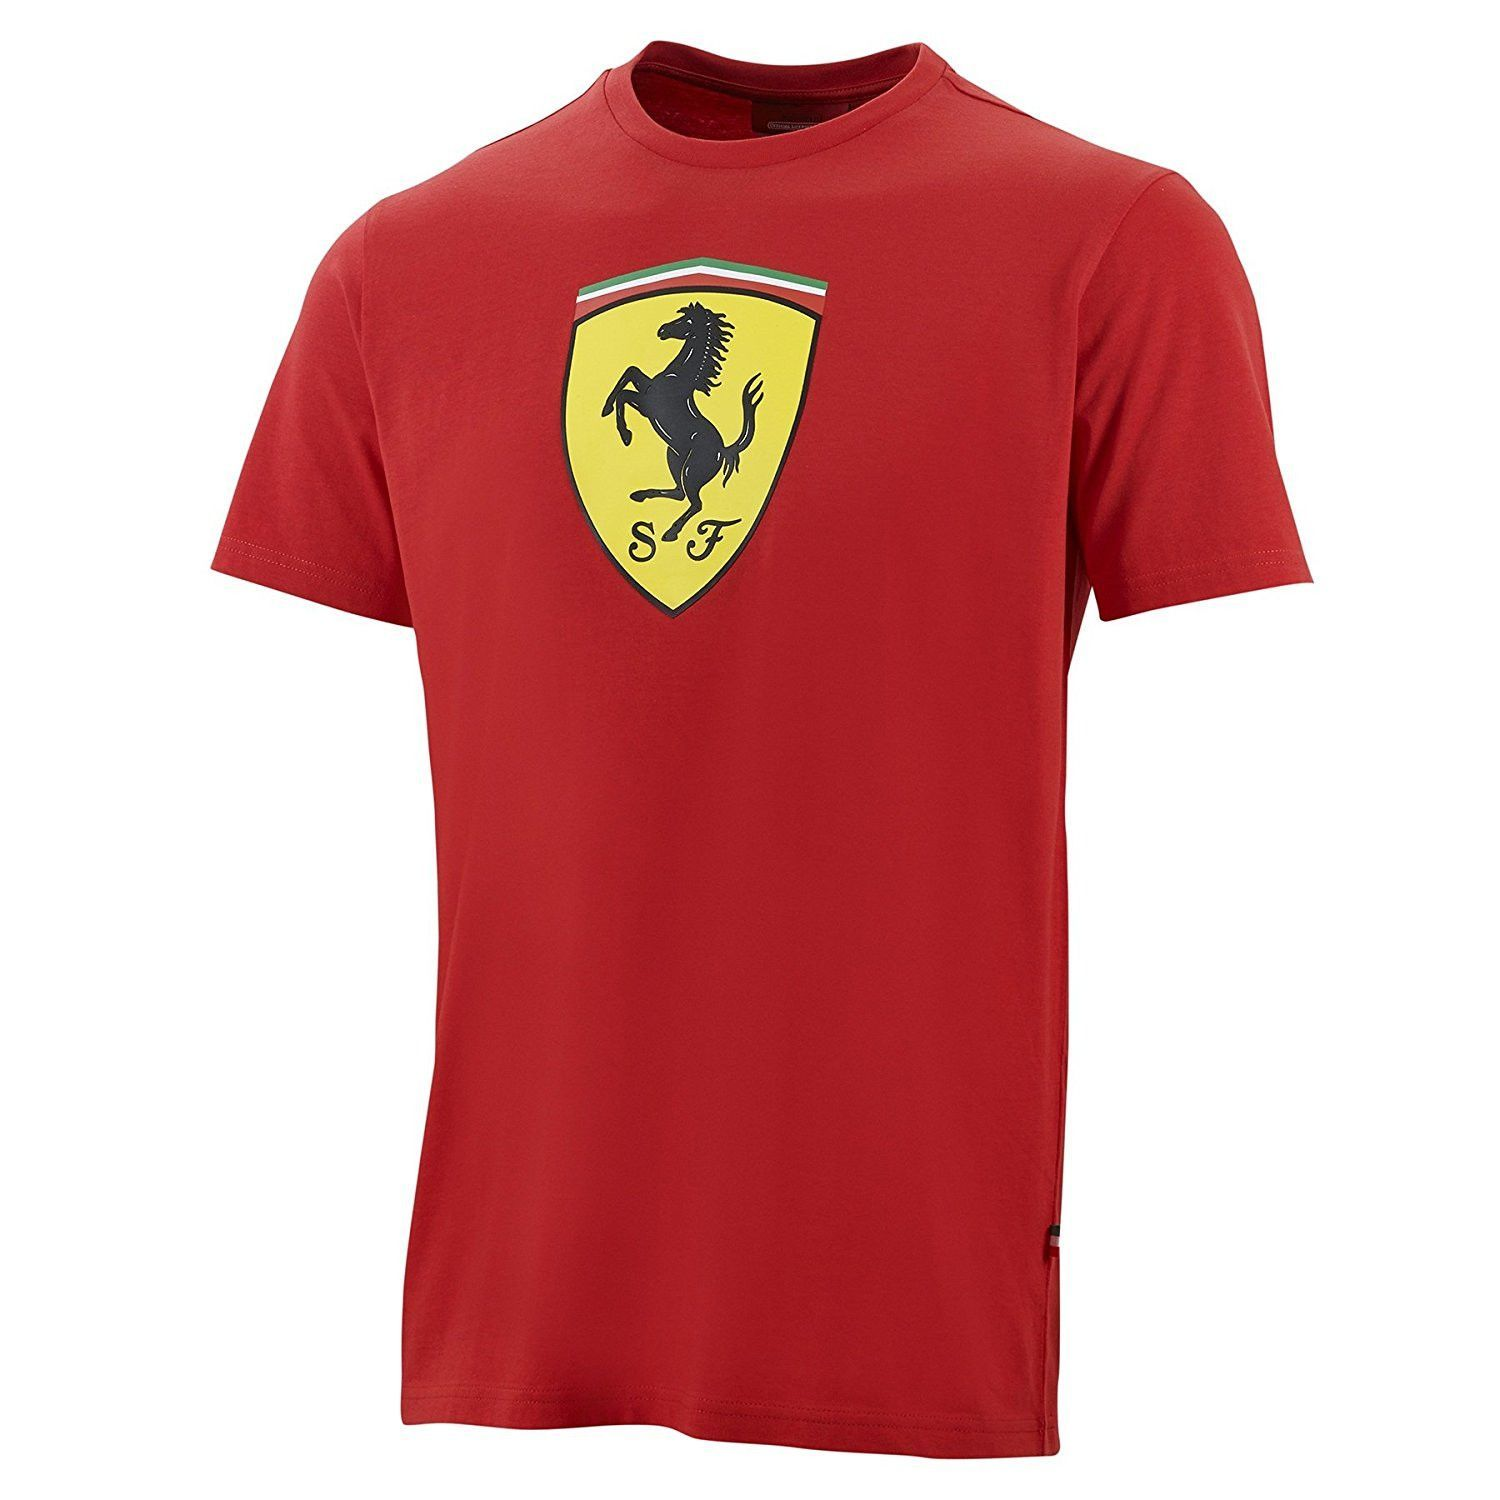 to red walldecal in never t baby kids a start dsc africa ferrari early too supporting and south clothes shirt olx own